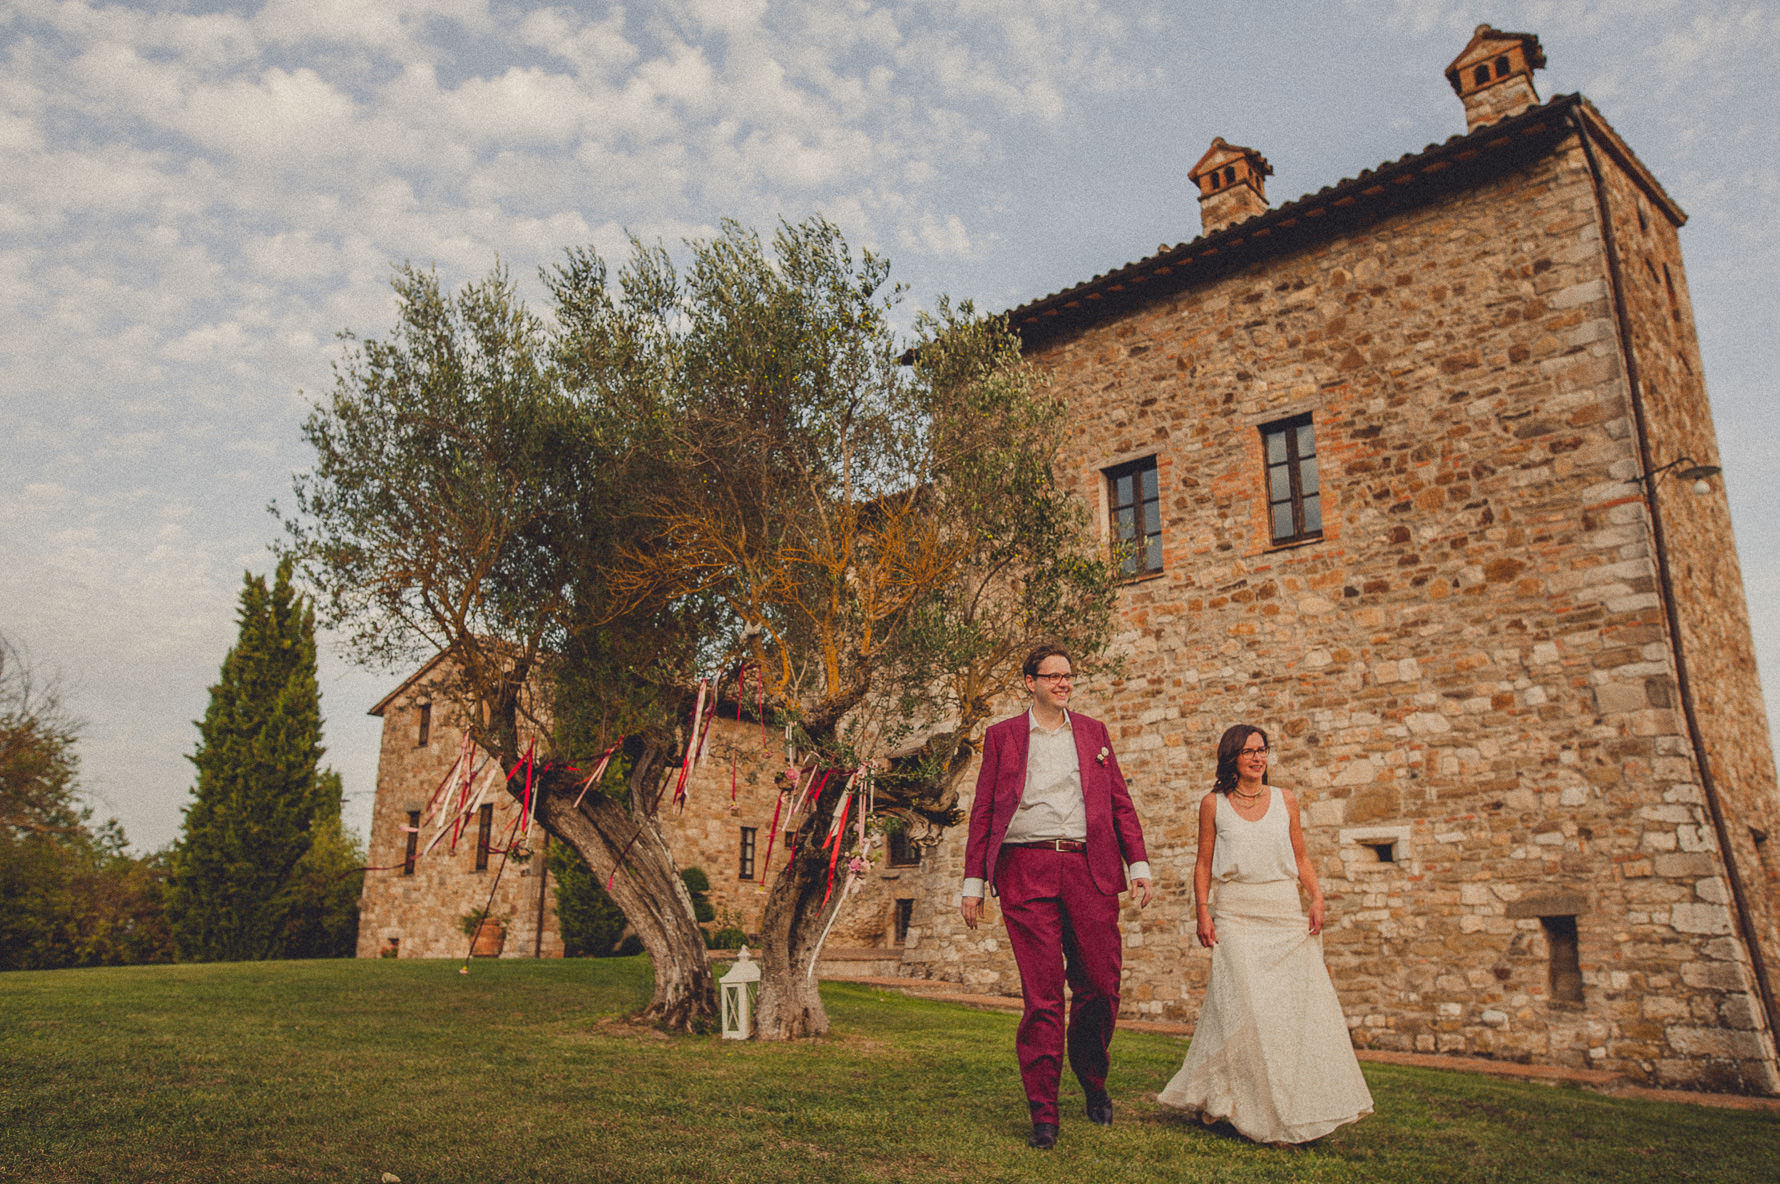 livio-lacurre-italy-destination-wedding-photographer